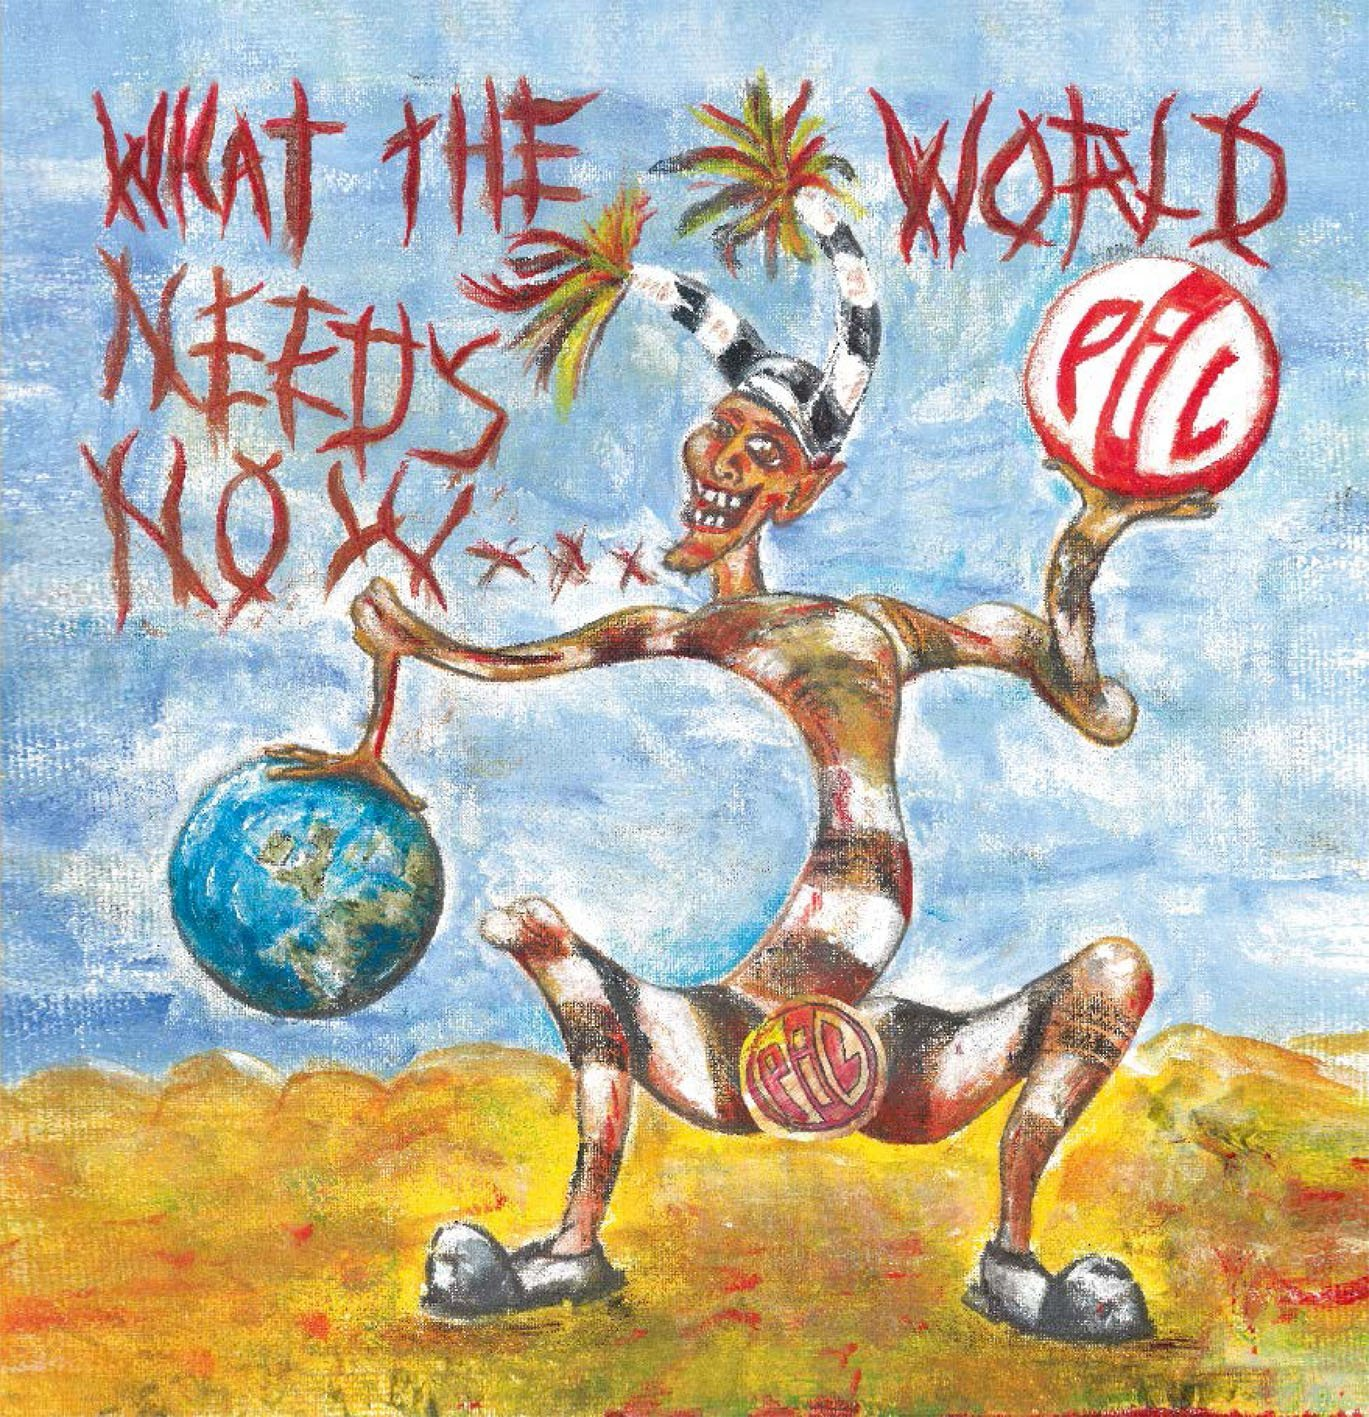 PUBLIC IMAGE LTD - WHAT THE WORLD NEEDS NOW (CD)